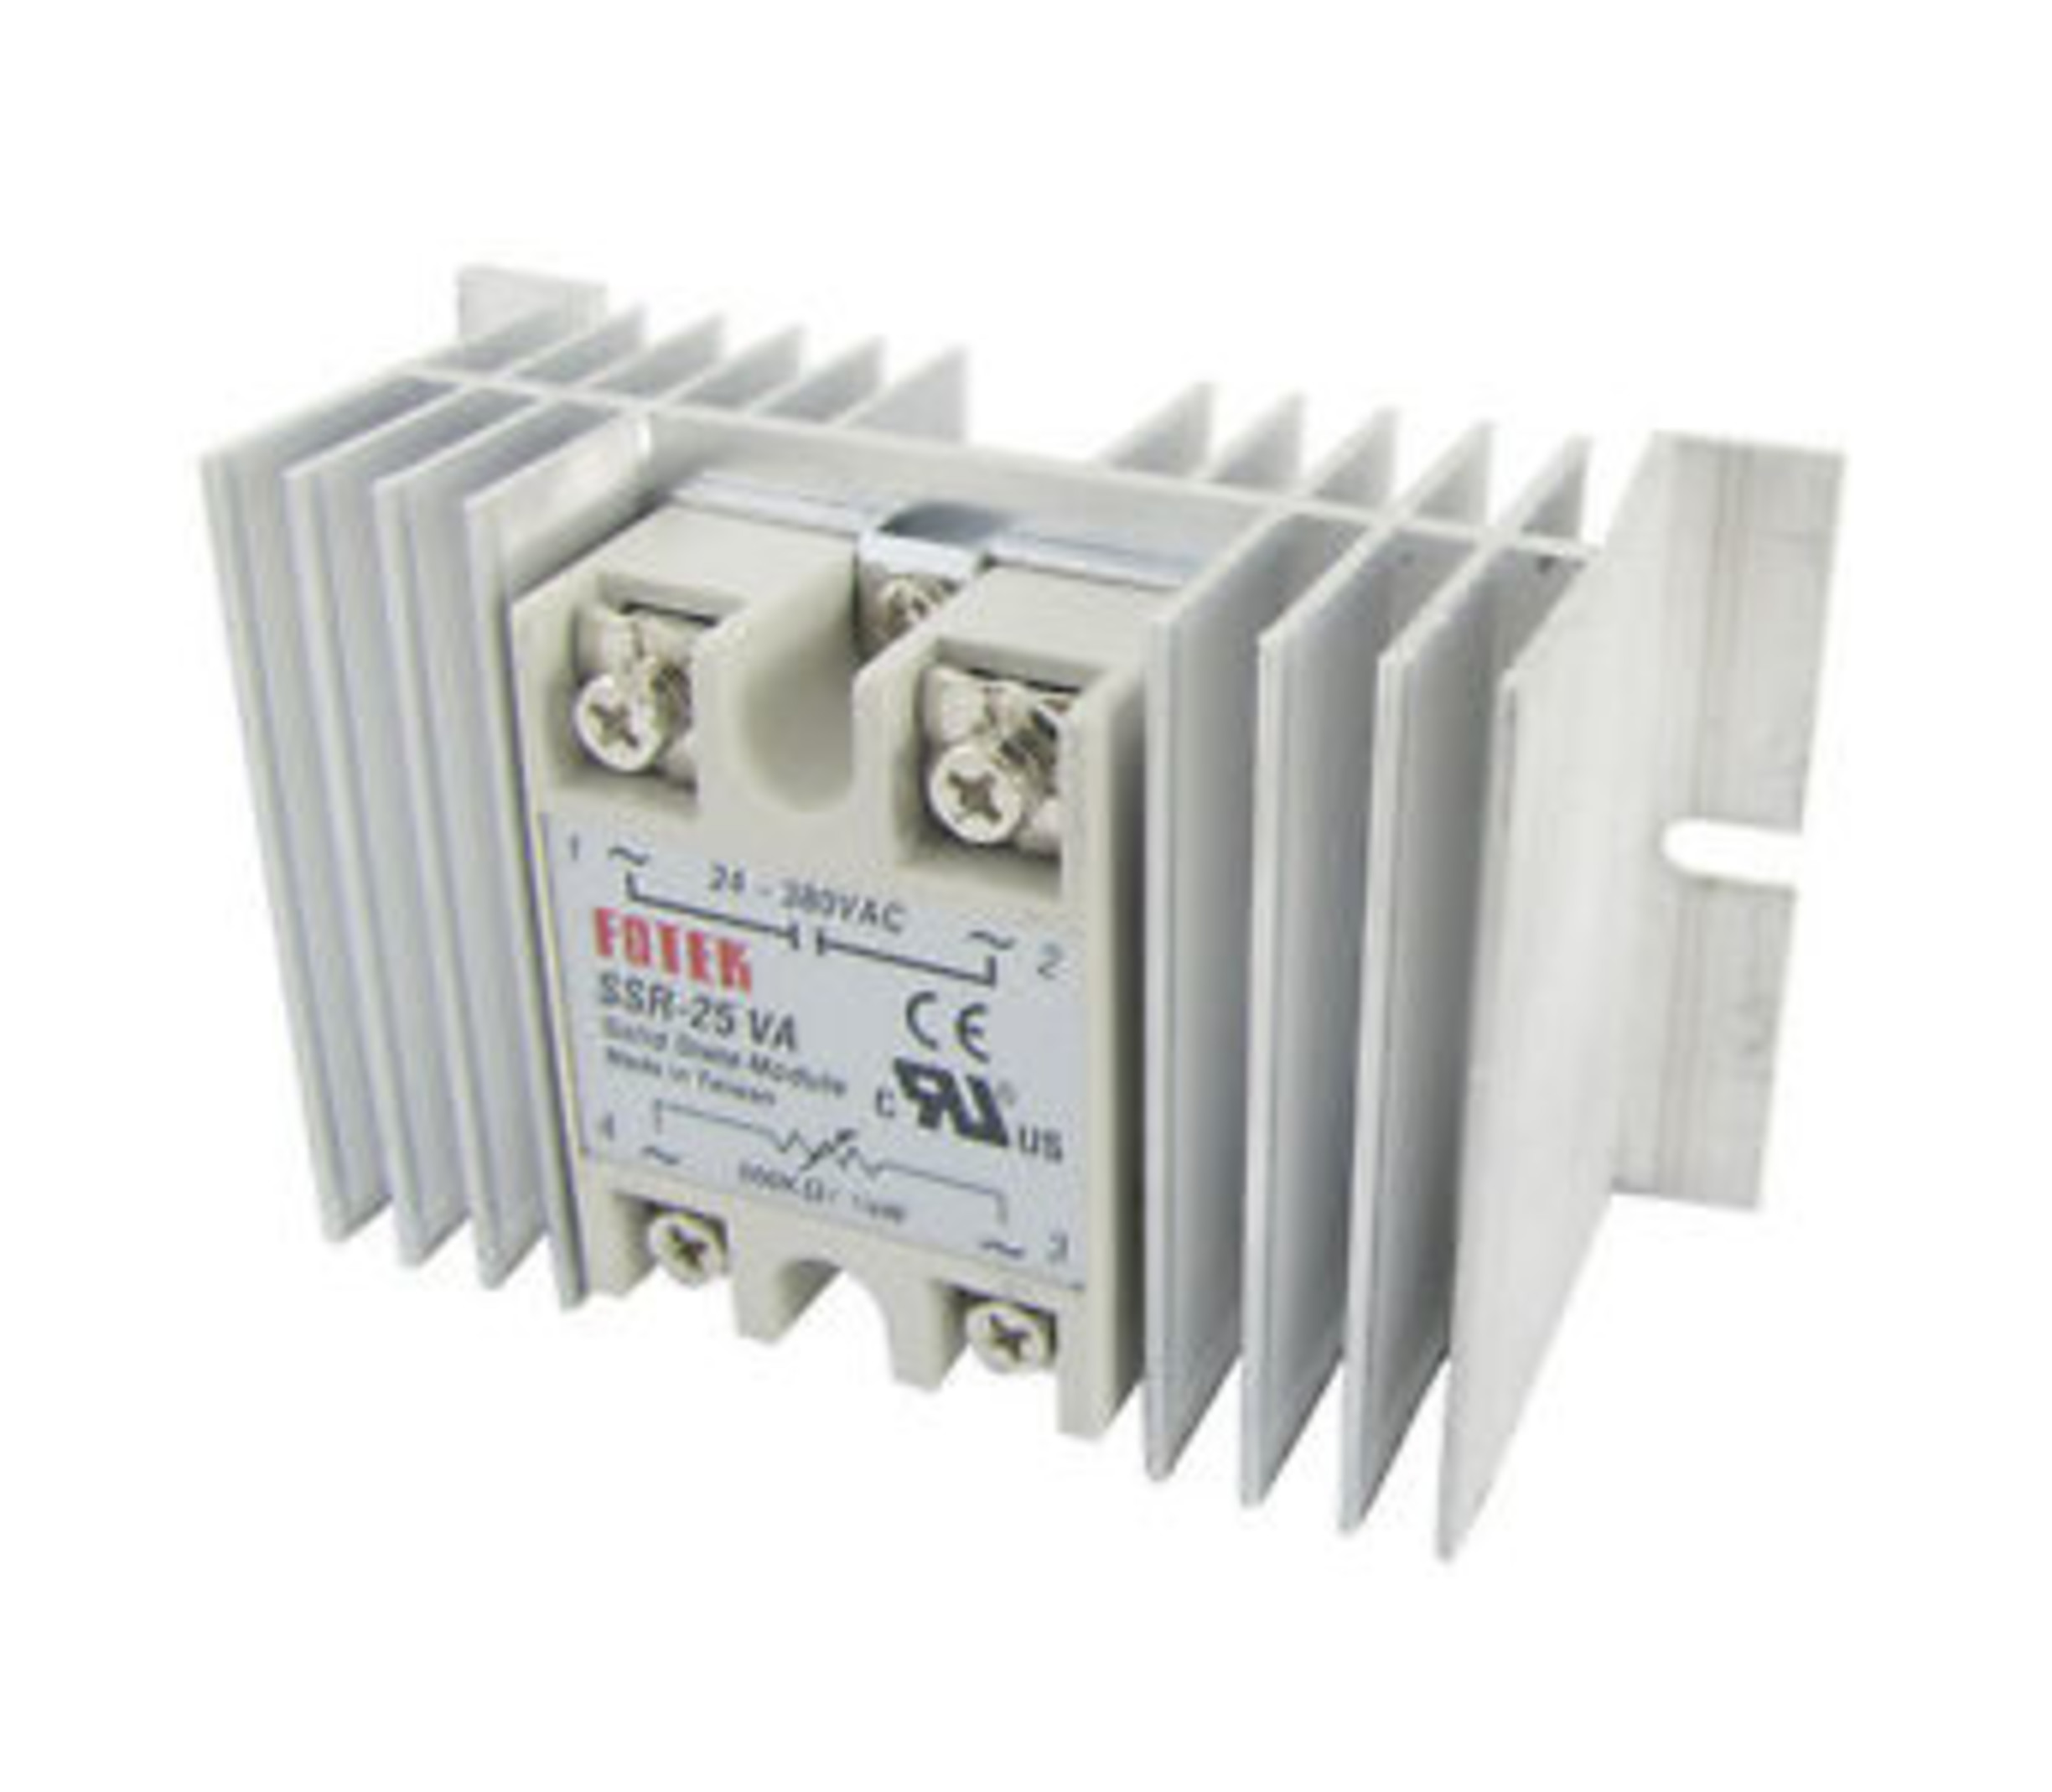 Koelelement tbv solid state relais 25A tot 100A SSR